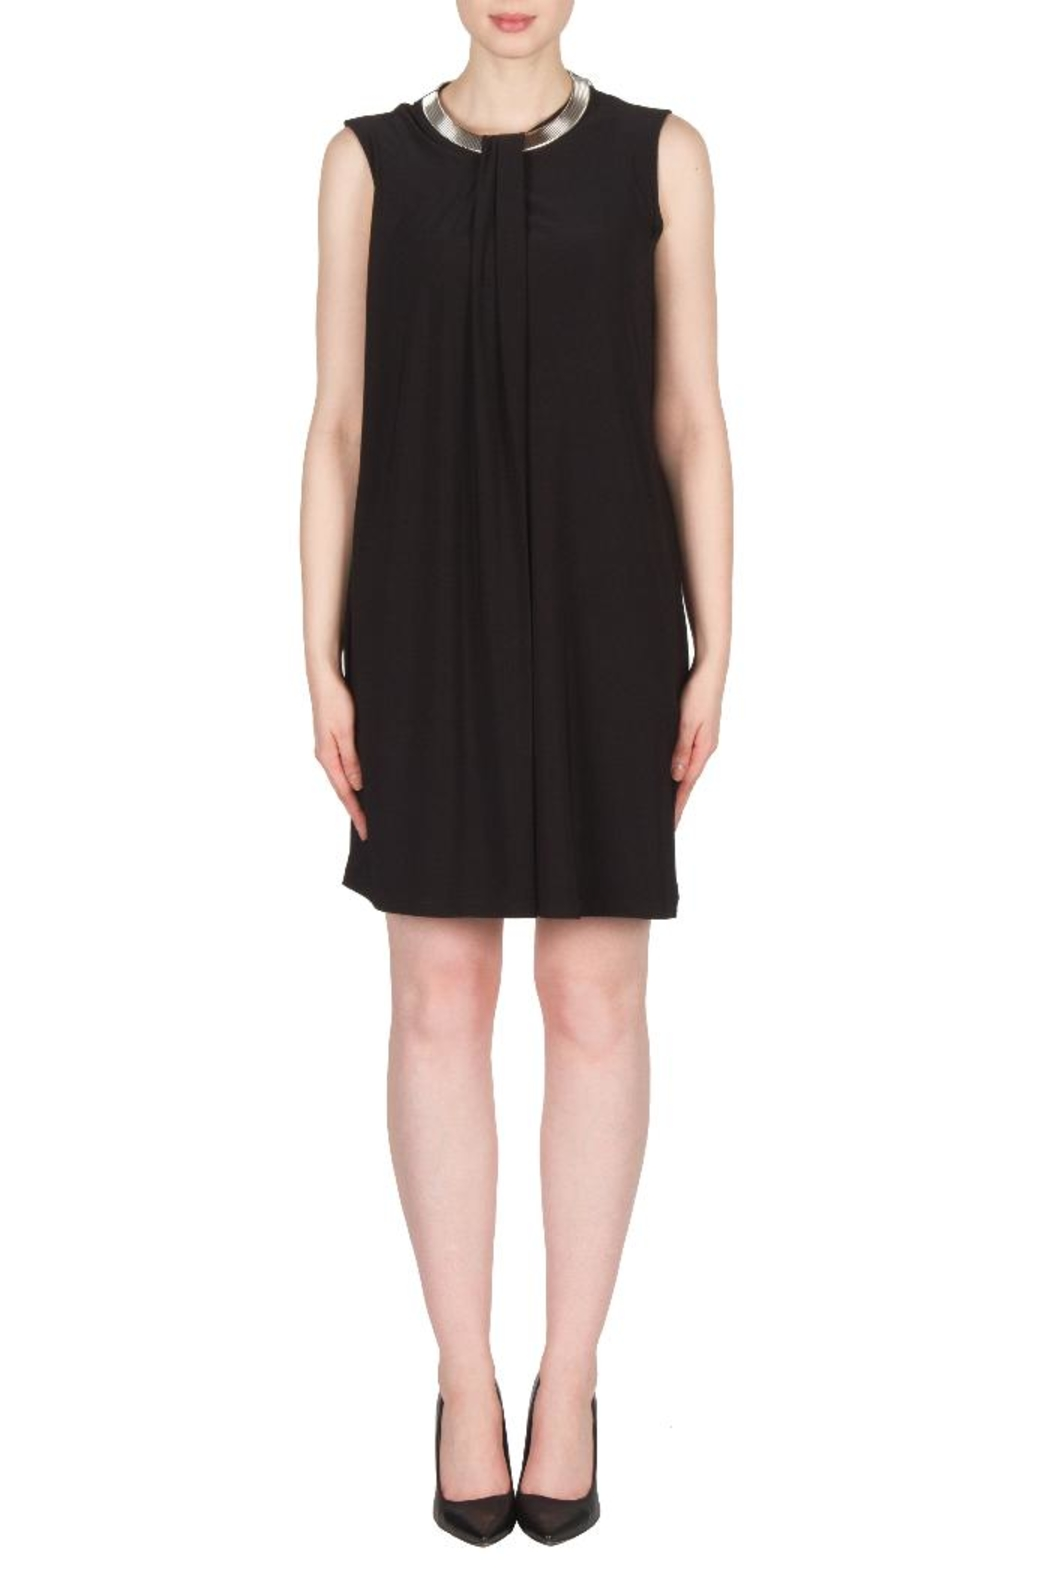 Joseph Ribkoff Black Collar Dress - Front Cropped Image